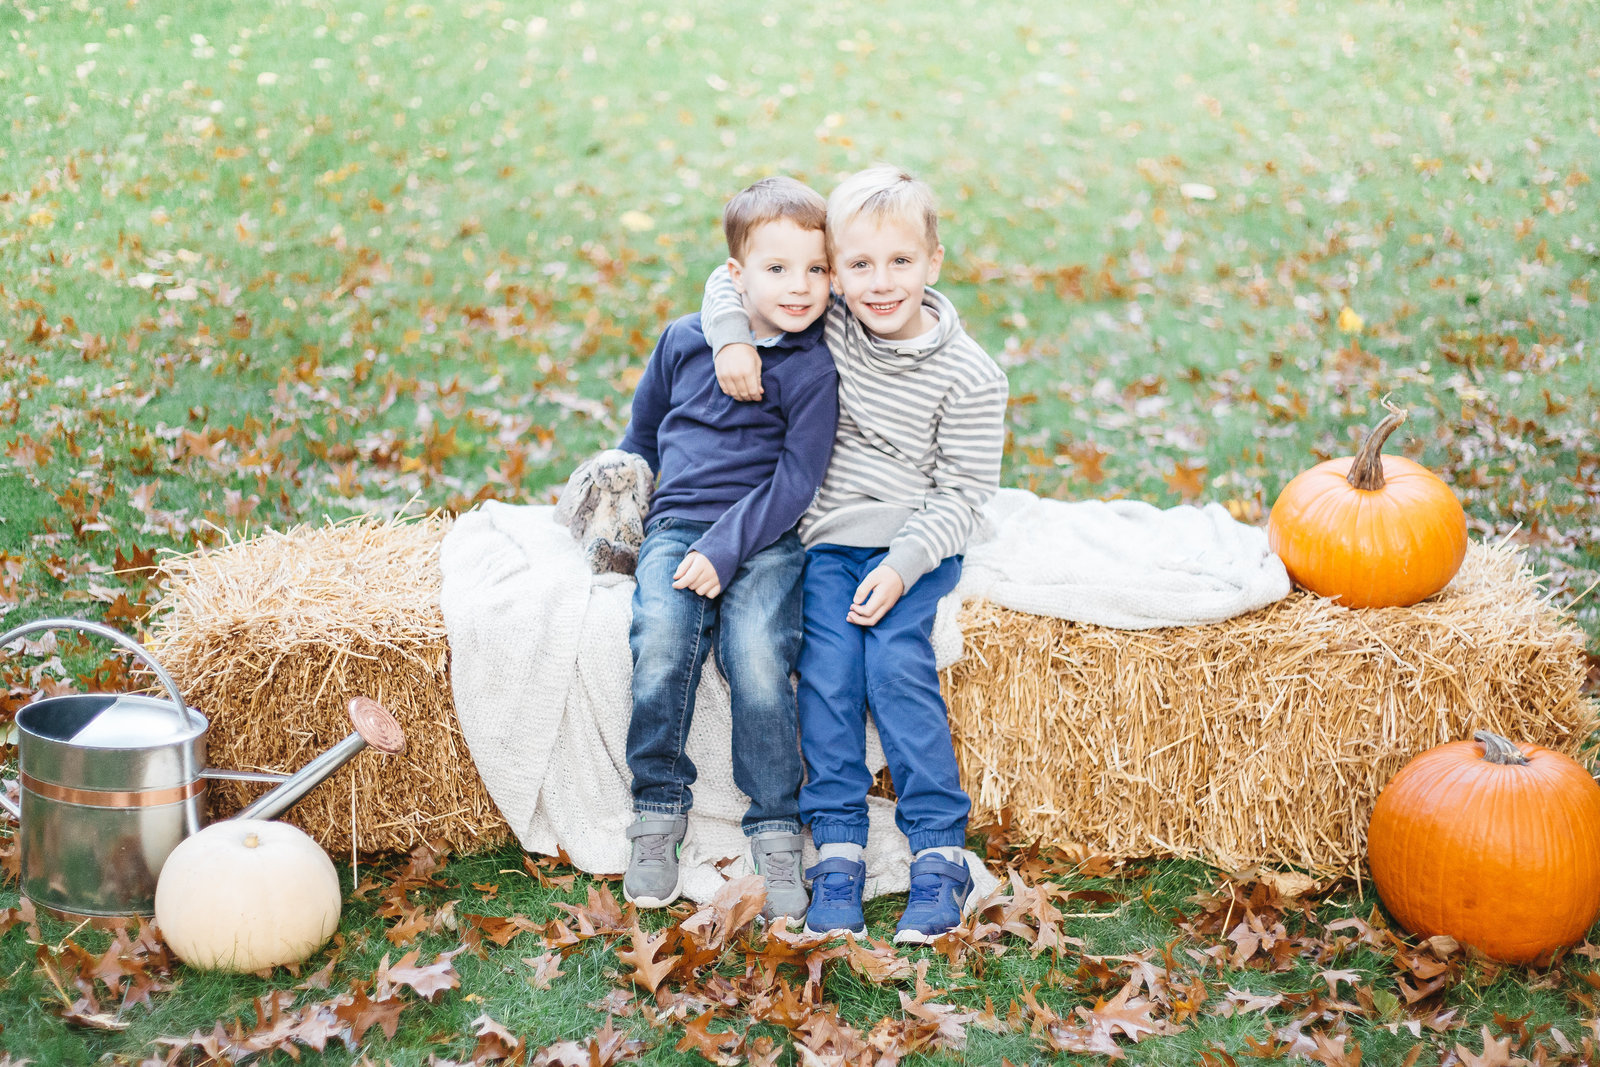 Rochester NY family photography session showing two brothers hugging